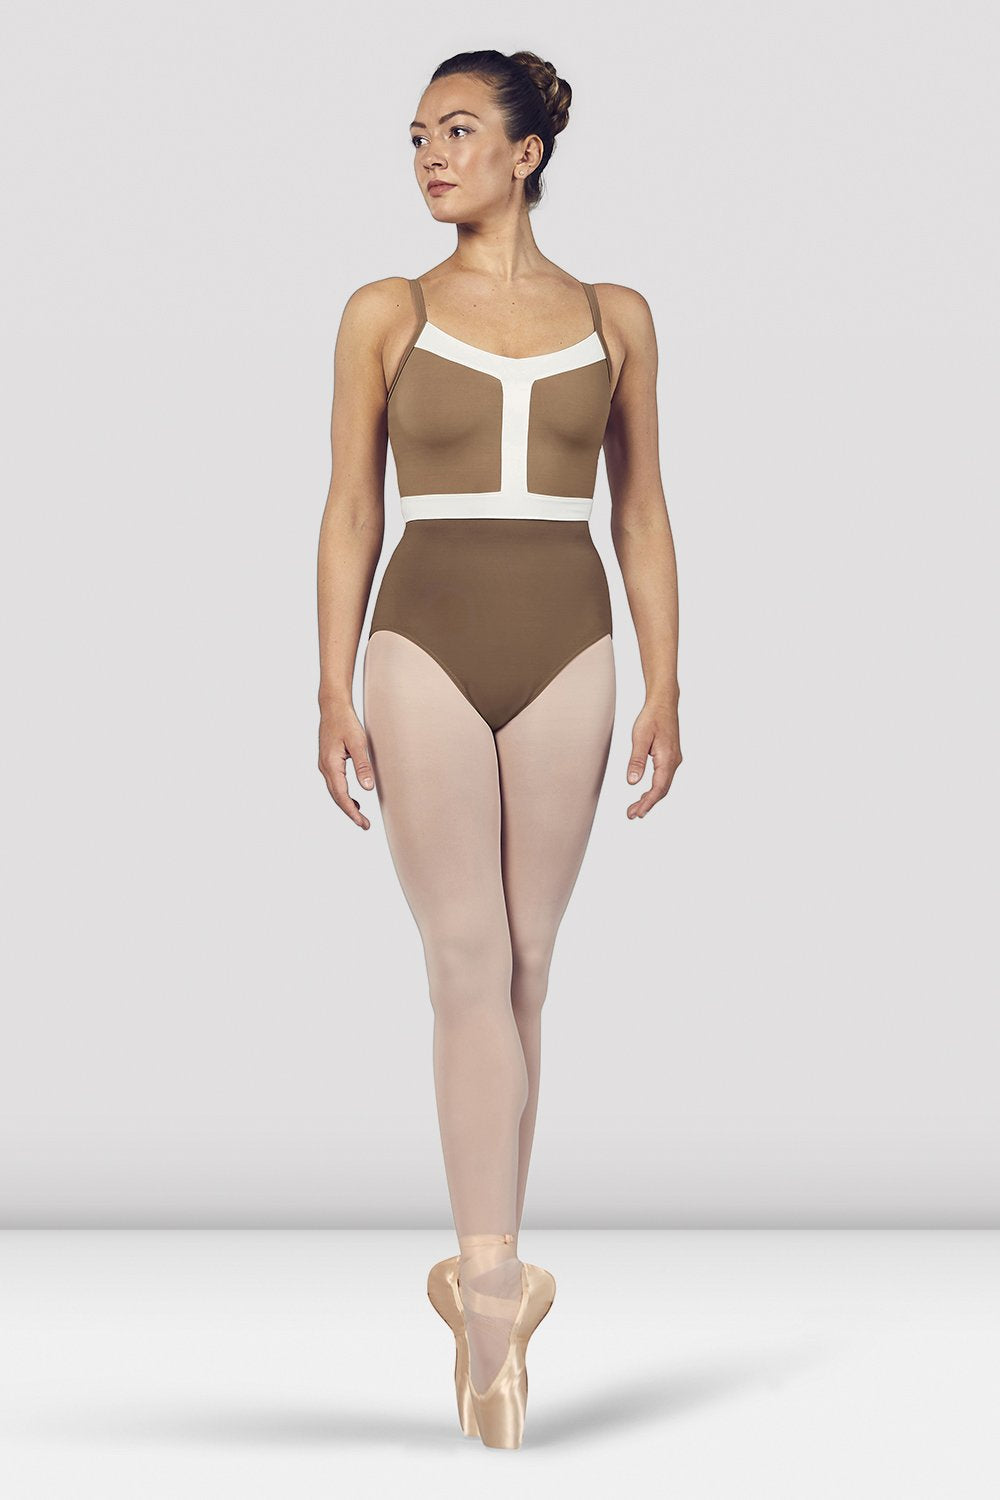 Praline Bloch Ladies Amora Camisole Leotard on female model en pointe in fifth position